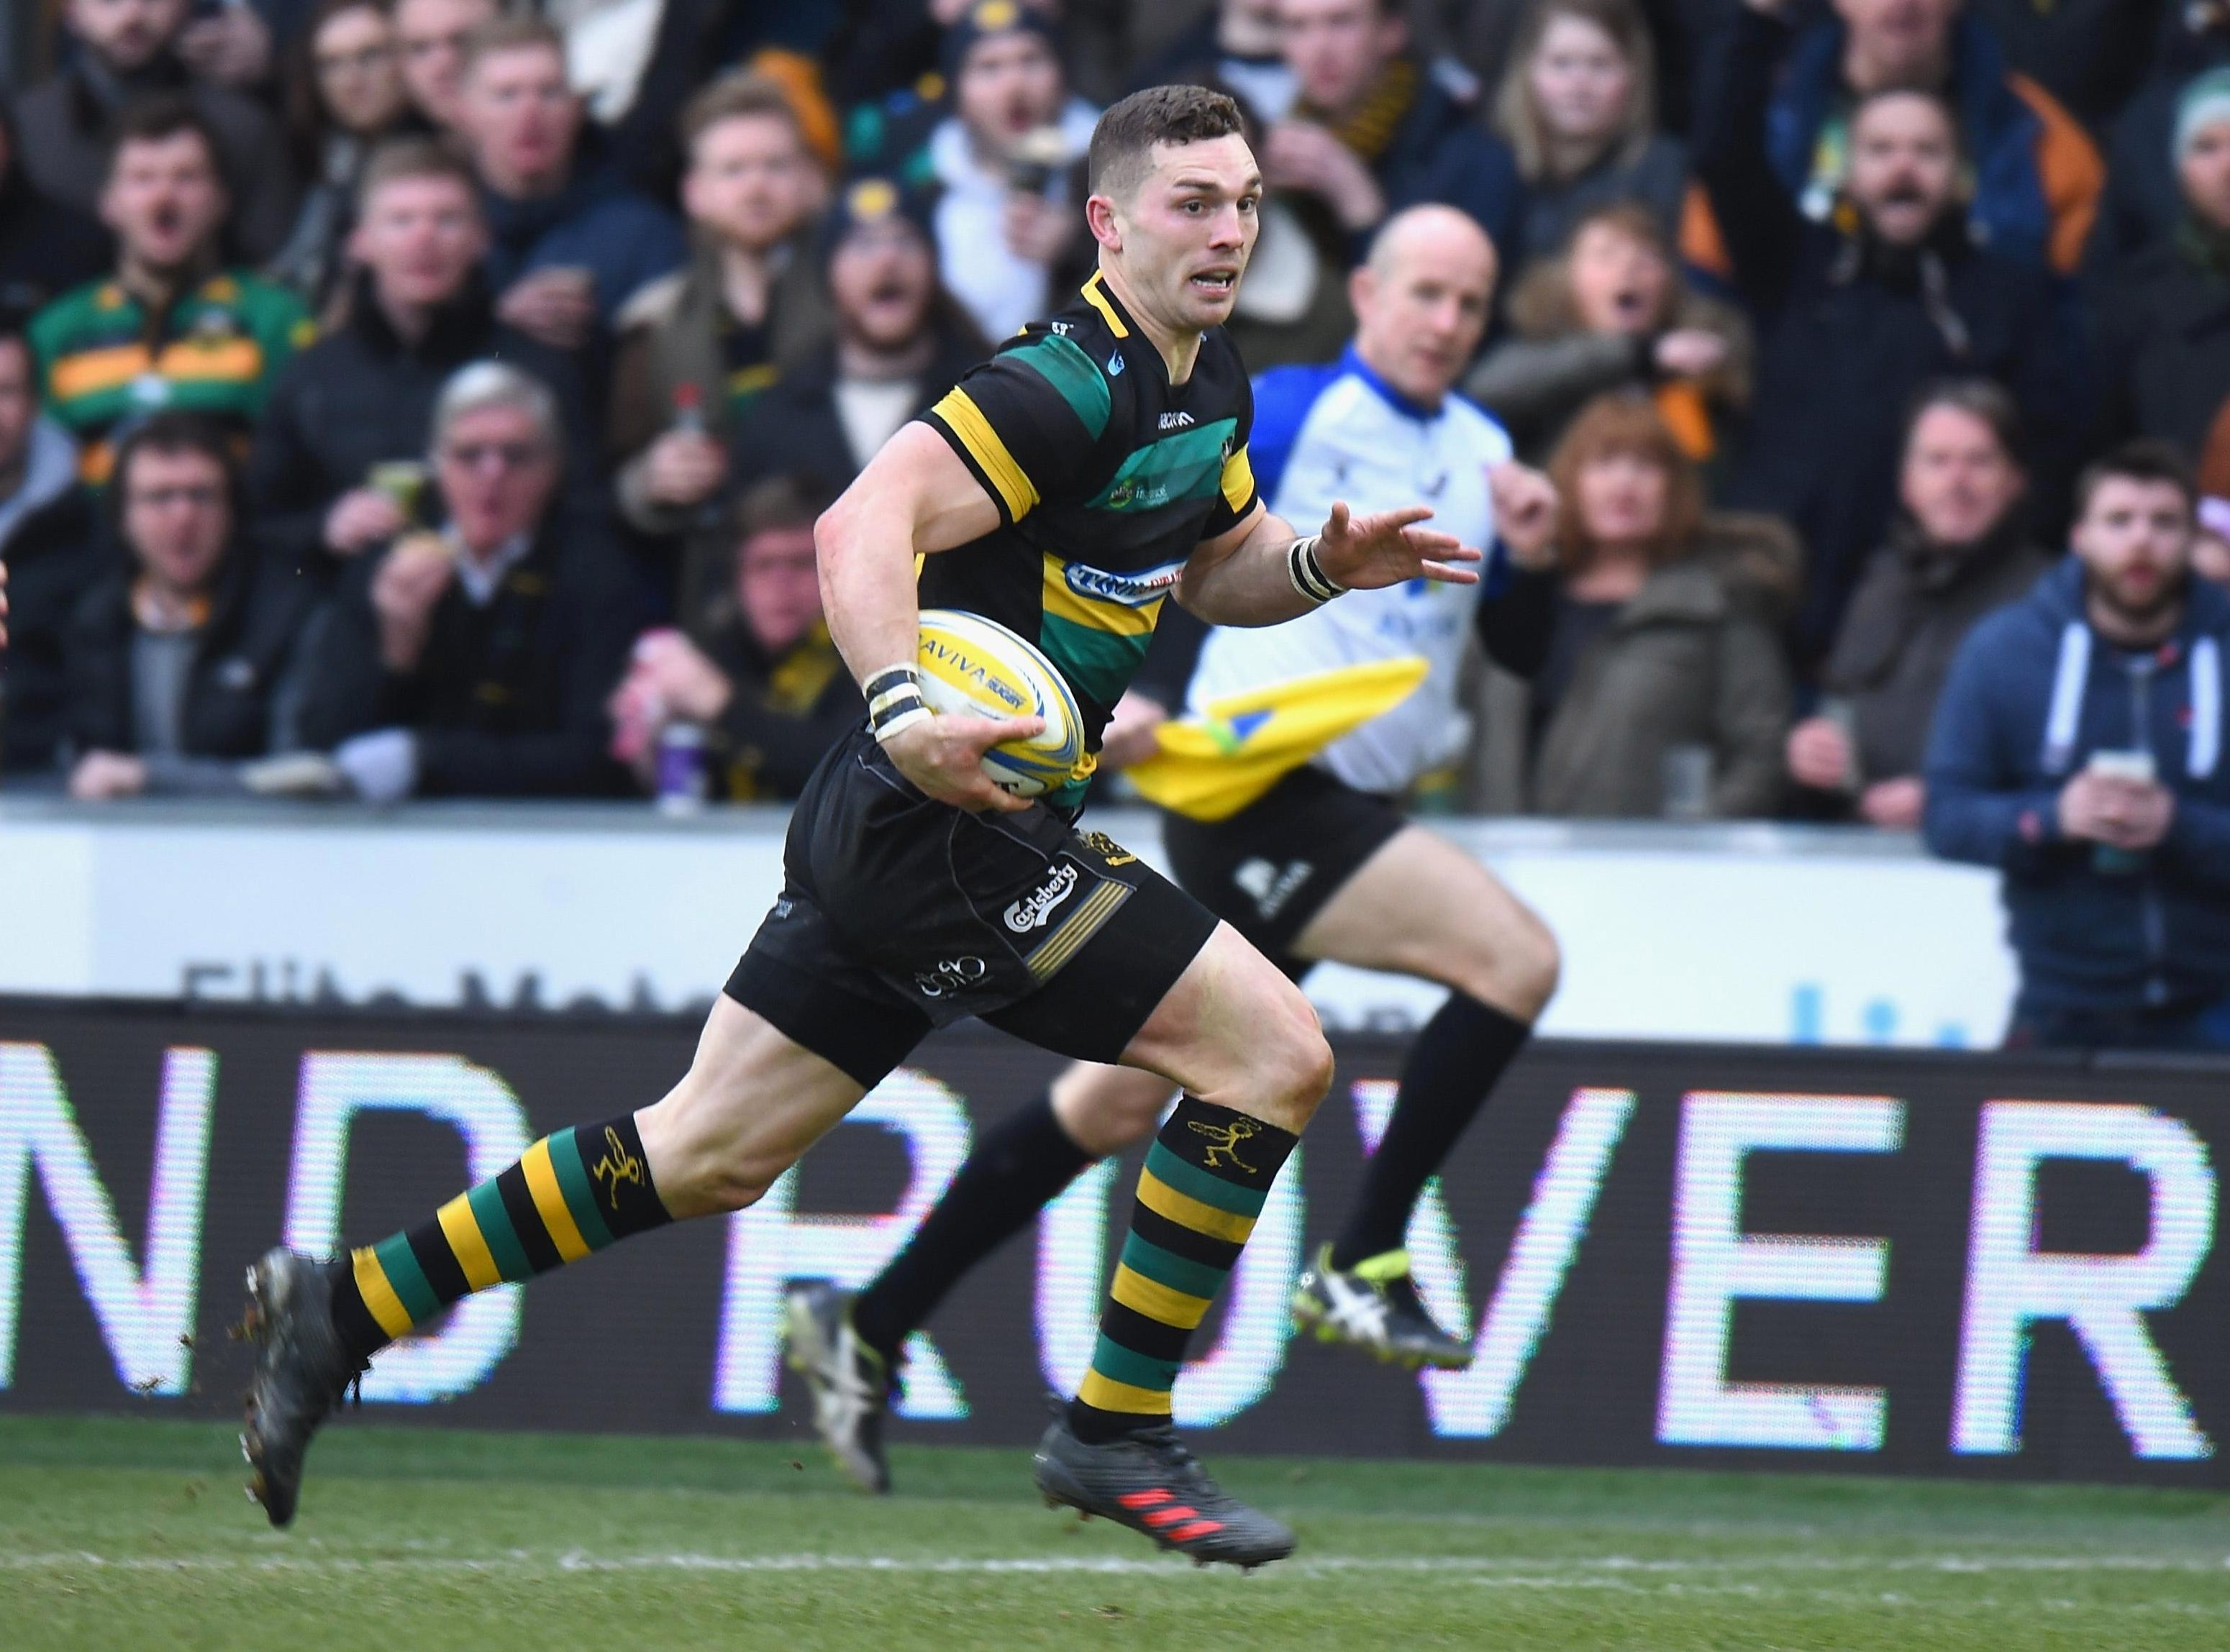 George North has played for Northampton since moving from the Scarlets in 2013